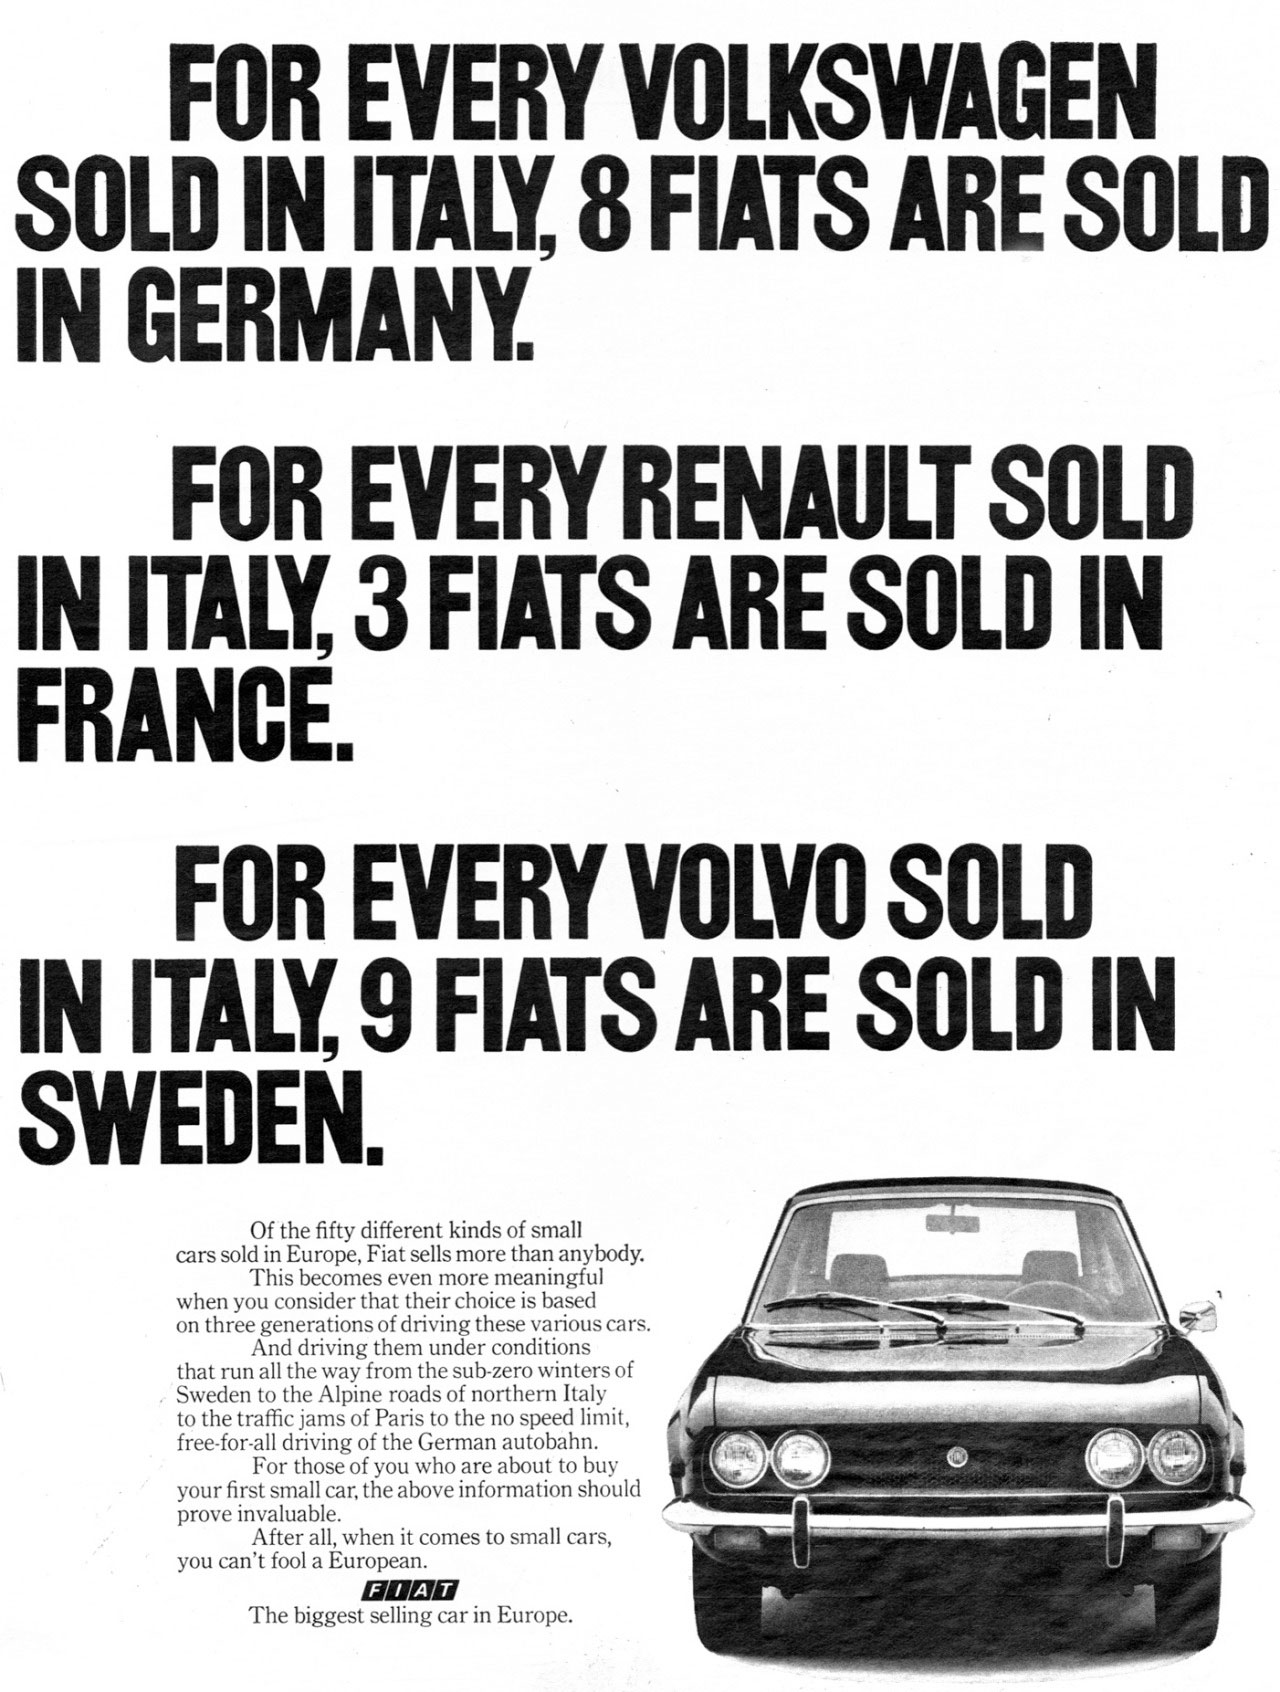 FOR EVERY VOLKSWAGEN SOLD IN ITALY, 8 FIATS ARE SOLD IN GERMANY. FOR EVERY RENAULT SOLD IN ITALY, 3 FIATS ARE SOLD IN FRANCE. FOR EVERY VOLVO SOLD IN ITALY, 9 FIATS ARE SOLD IN SWEDEN.  Of the fifty different kinds of small cars sold in Europe, Fiat sells more than anybody. This becomes even more meaningful when you consider that Fiat's success with Europeans is based on three generations of driving these various cars. And driving them under conditions that run all the way from the sub-zero winters of Sweden to the Alpine roads of northern Italy to the traffic jams of Paris to the no speed limit, free-for-all driving of the German autobahn. For those of you who are about to buy your first small car, the above information should prove invaluable. After all, when it comes to small cars, you can't fool a European. IMAM The biggest selling car in Europe.